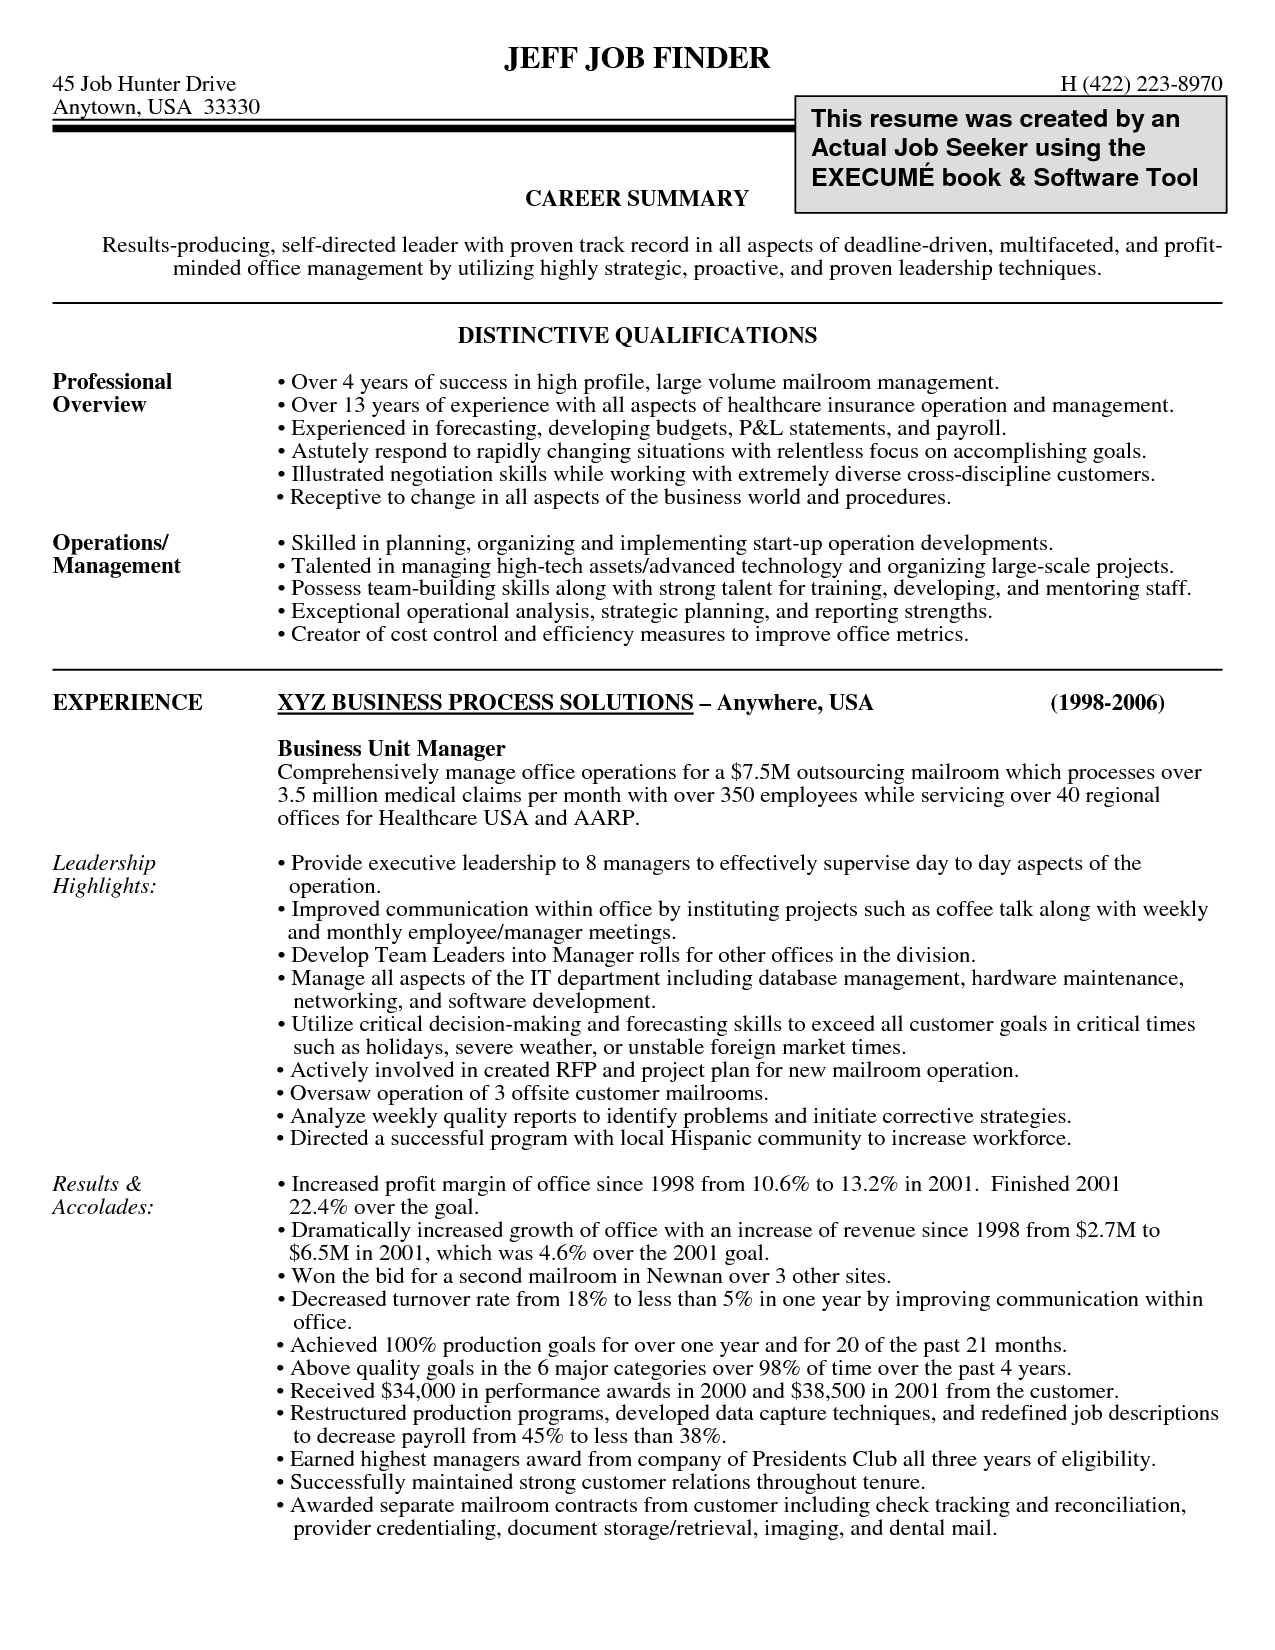 Resume Career Summary Norcrosshistorycenter Within Professional